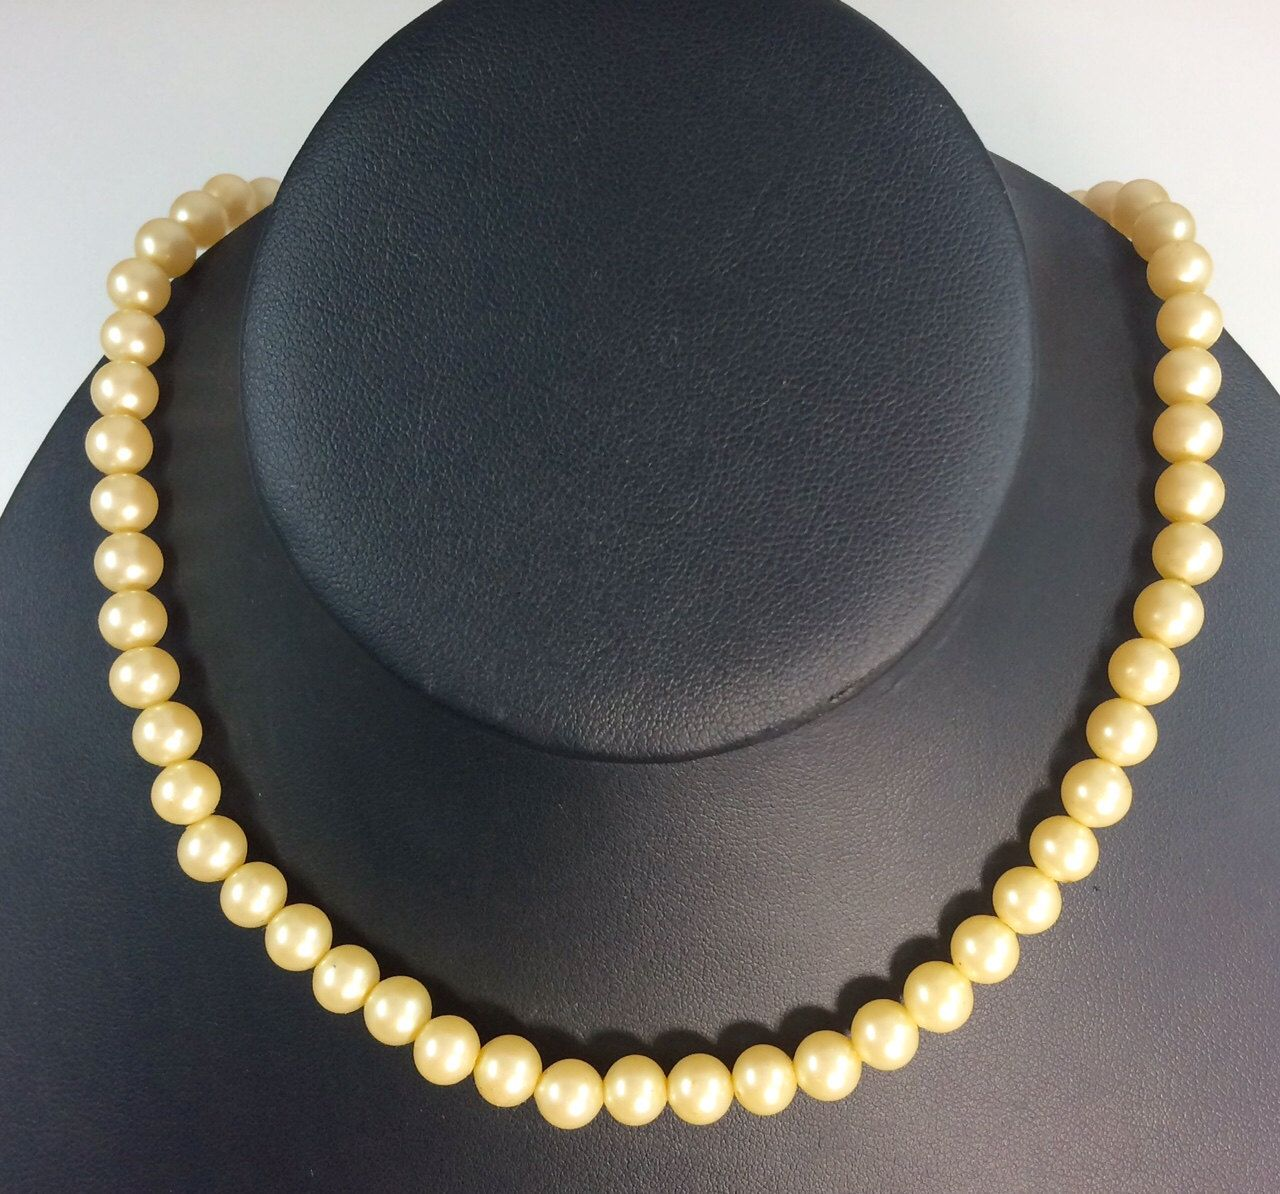 """Vintage Single Strand Faux Pearls 16"""" Necklace Japan Classic by 88AsianAntiques on Etsy"""